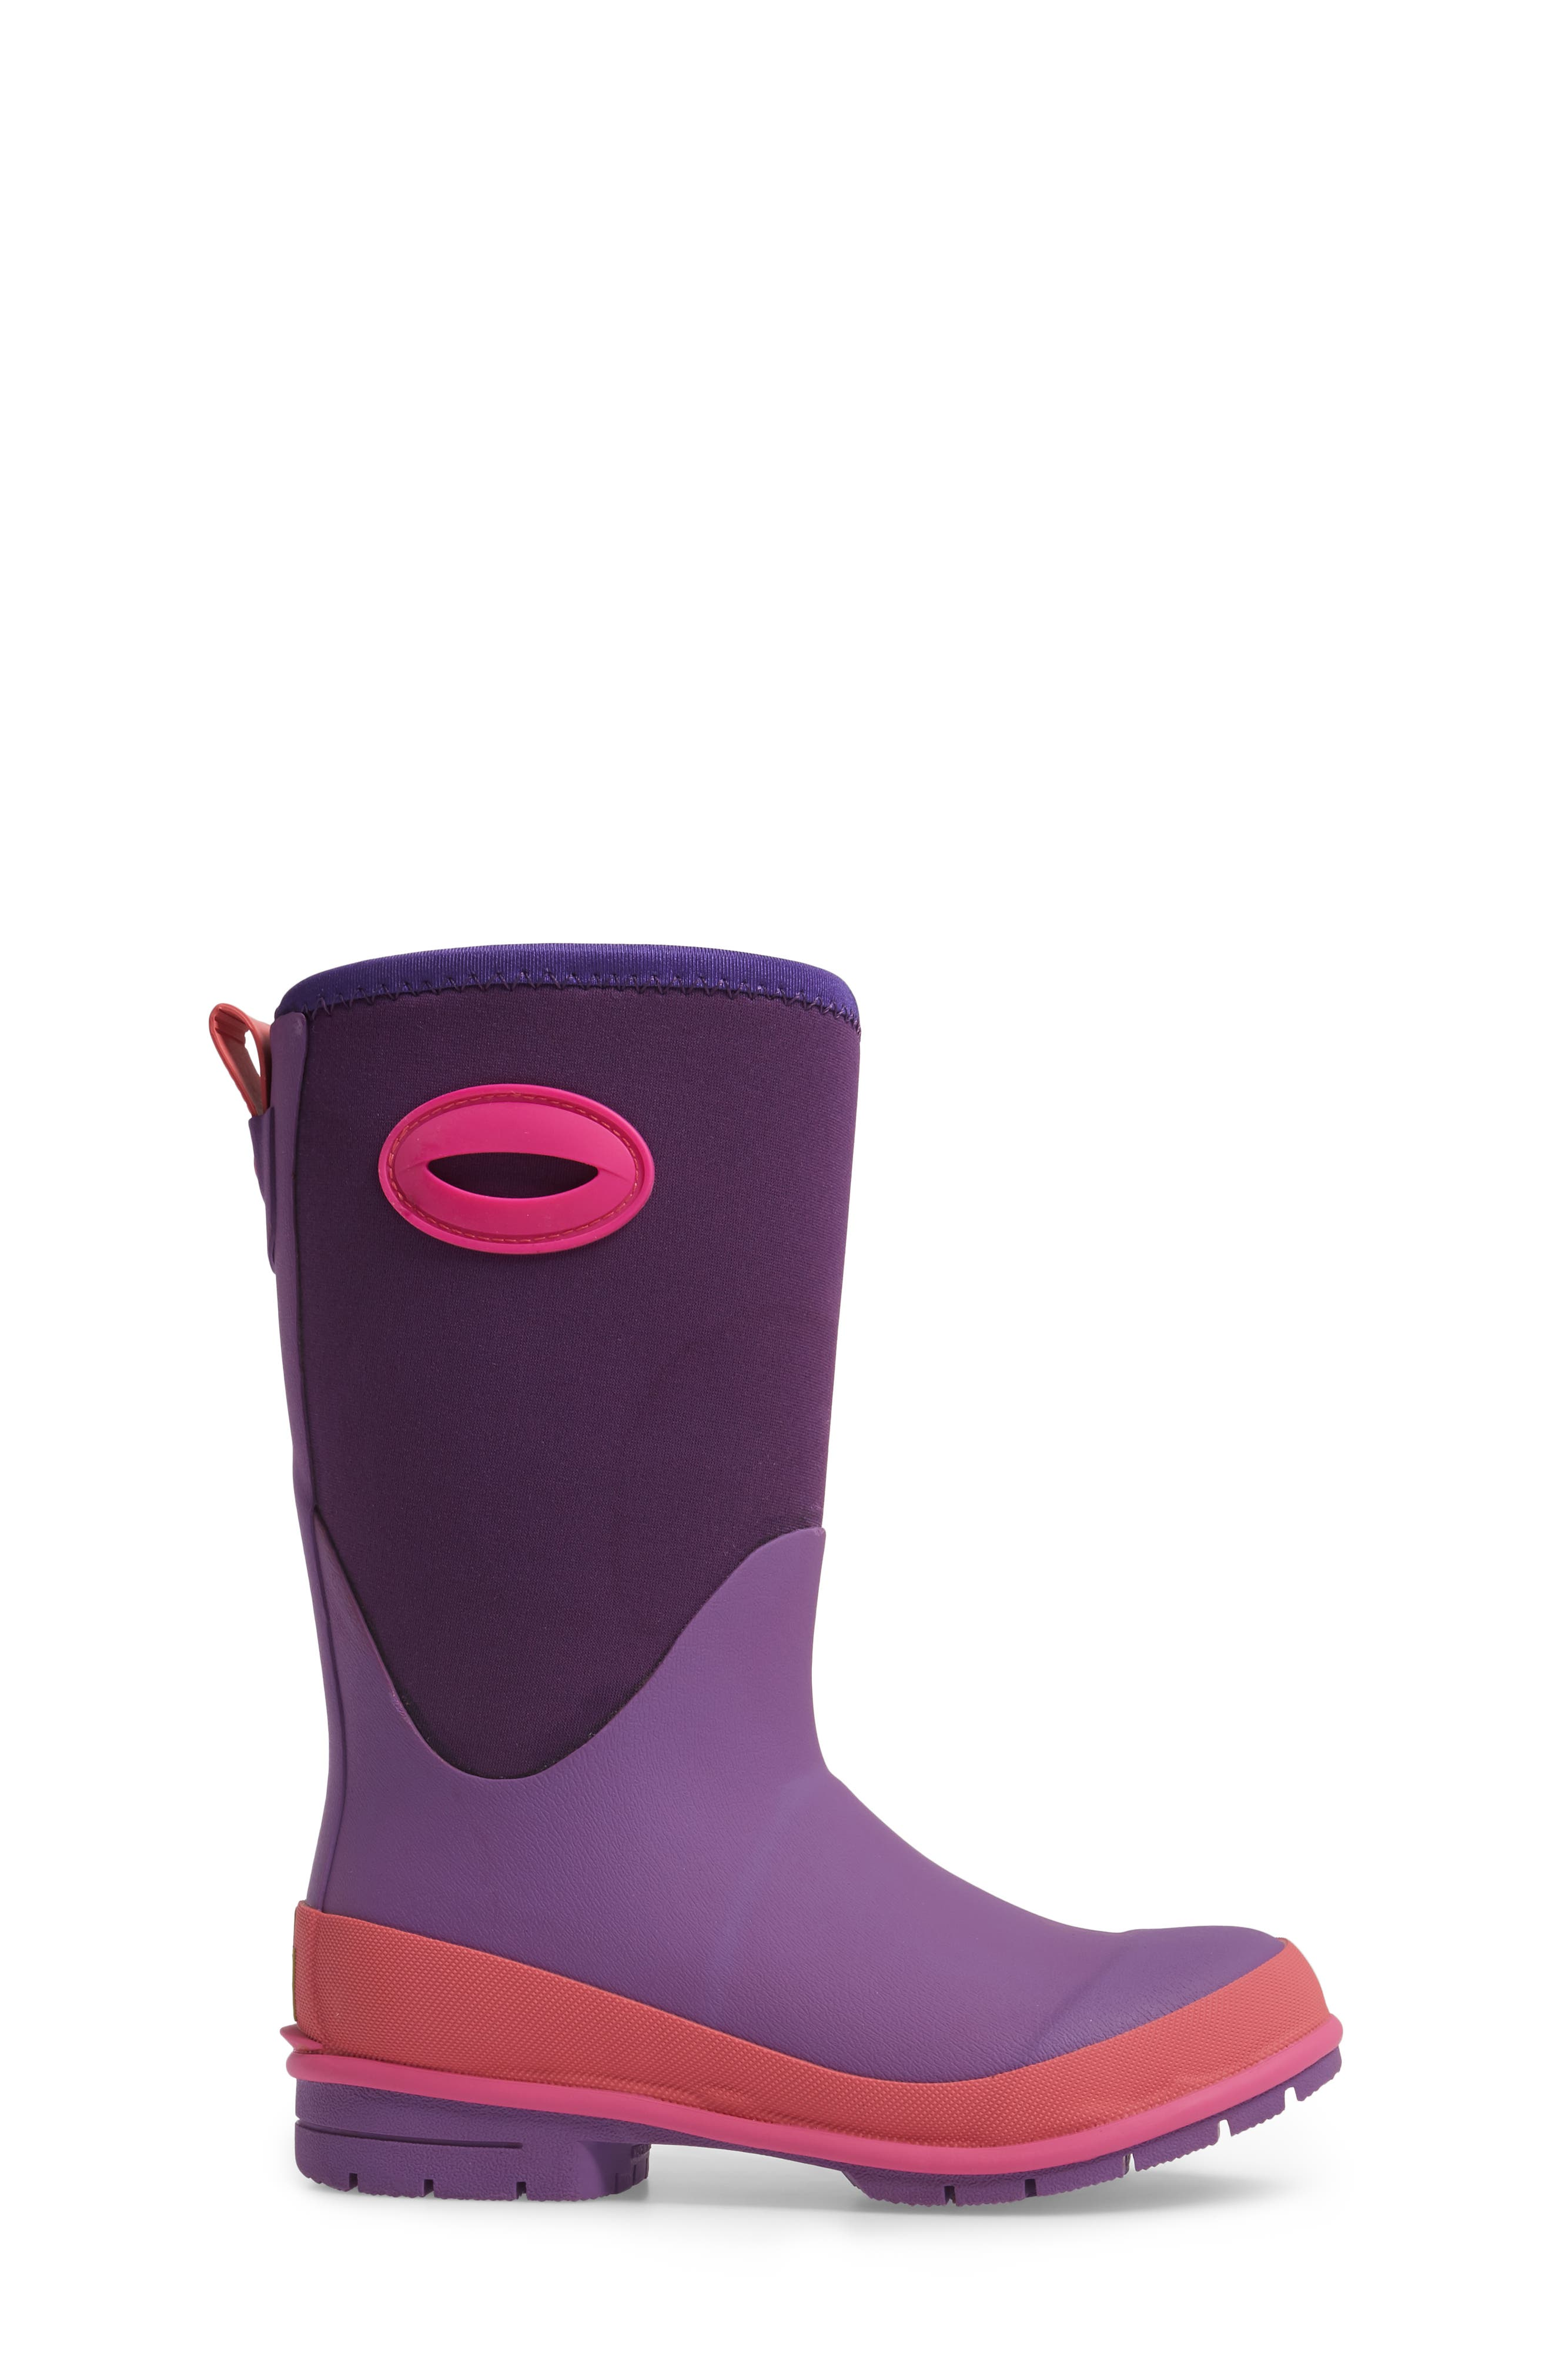 Neoprene Purple Snow Boot,                             Alternate thumbnail 3, color,                             511